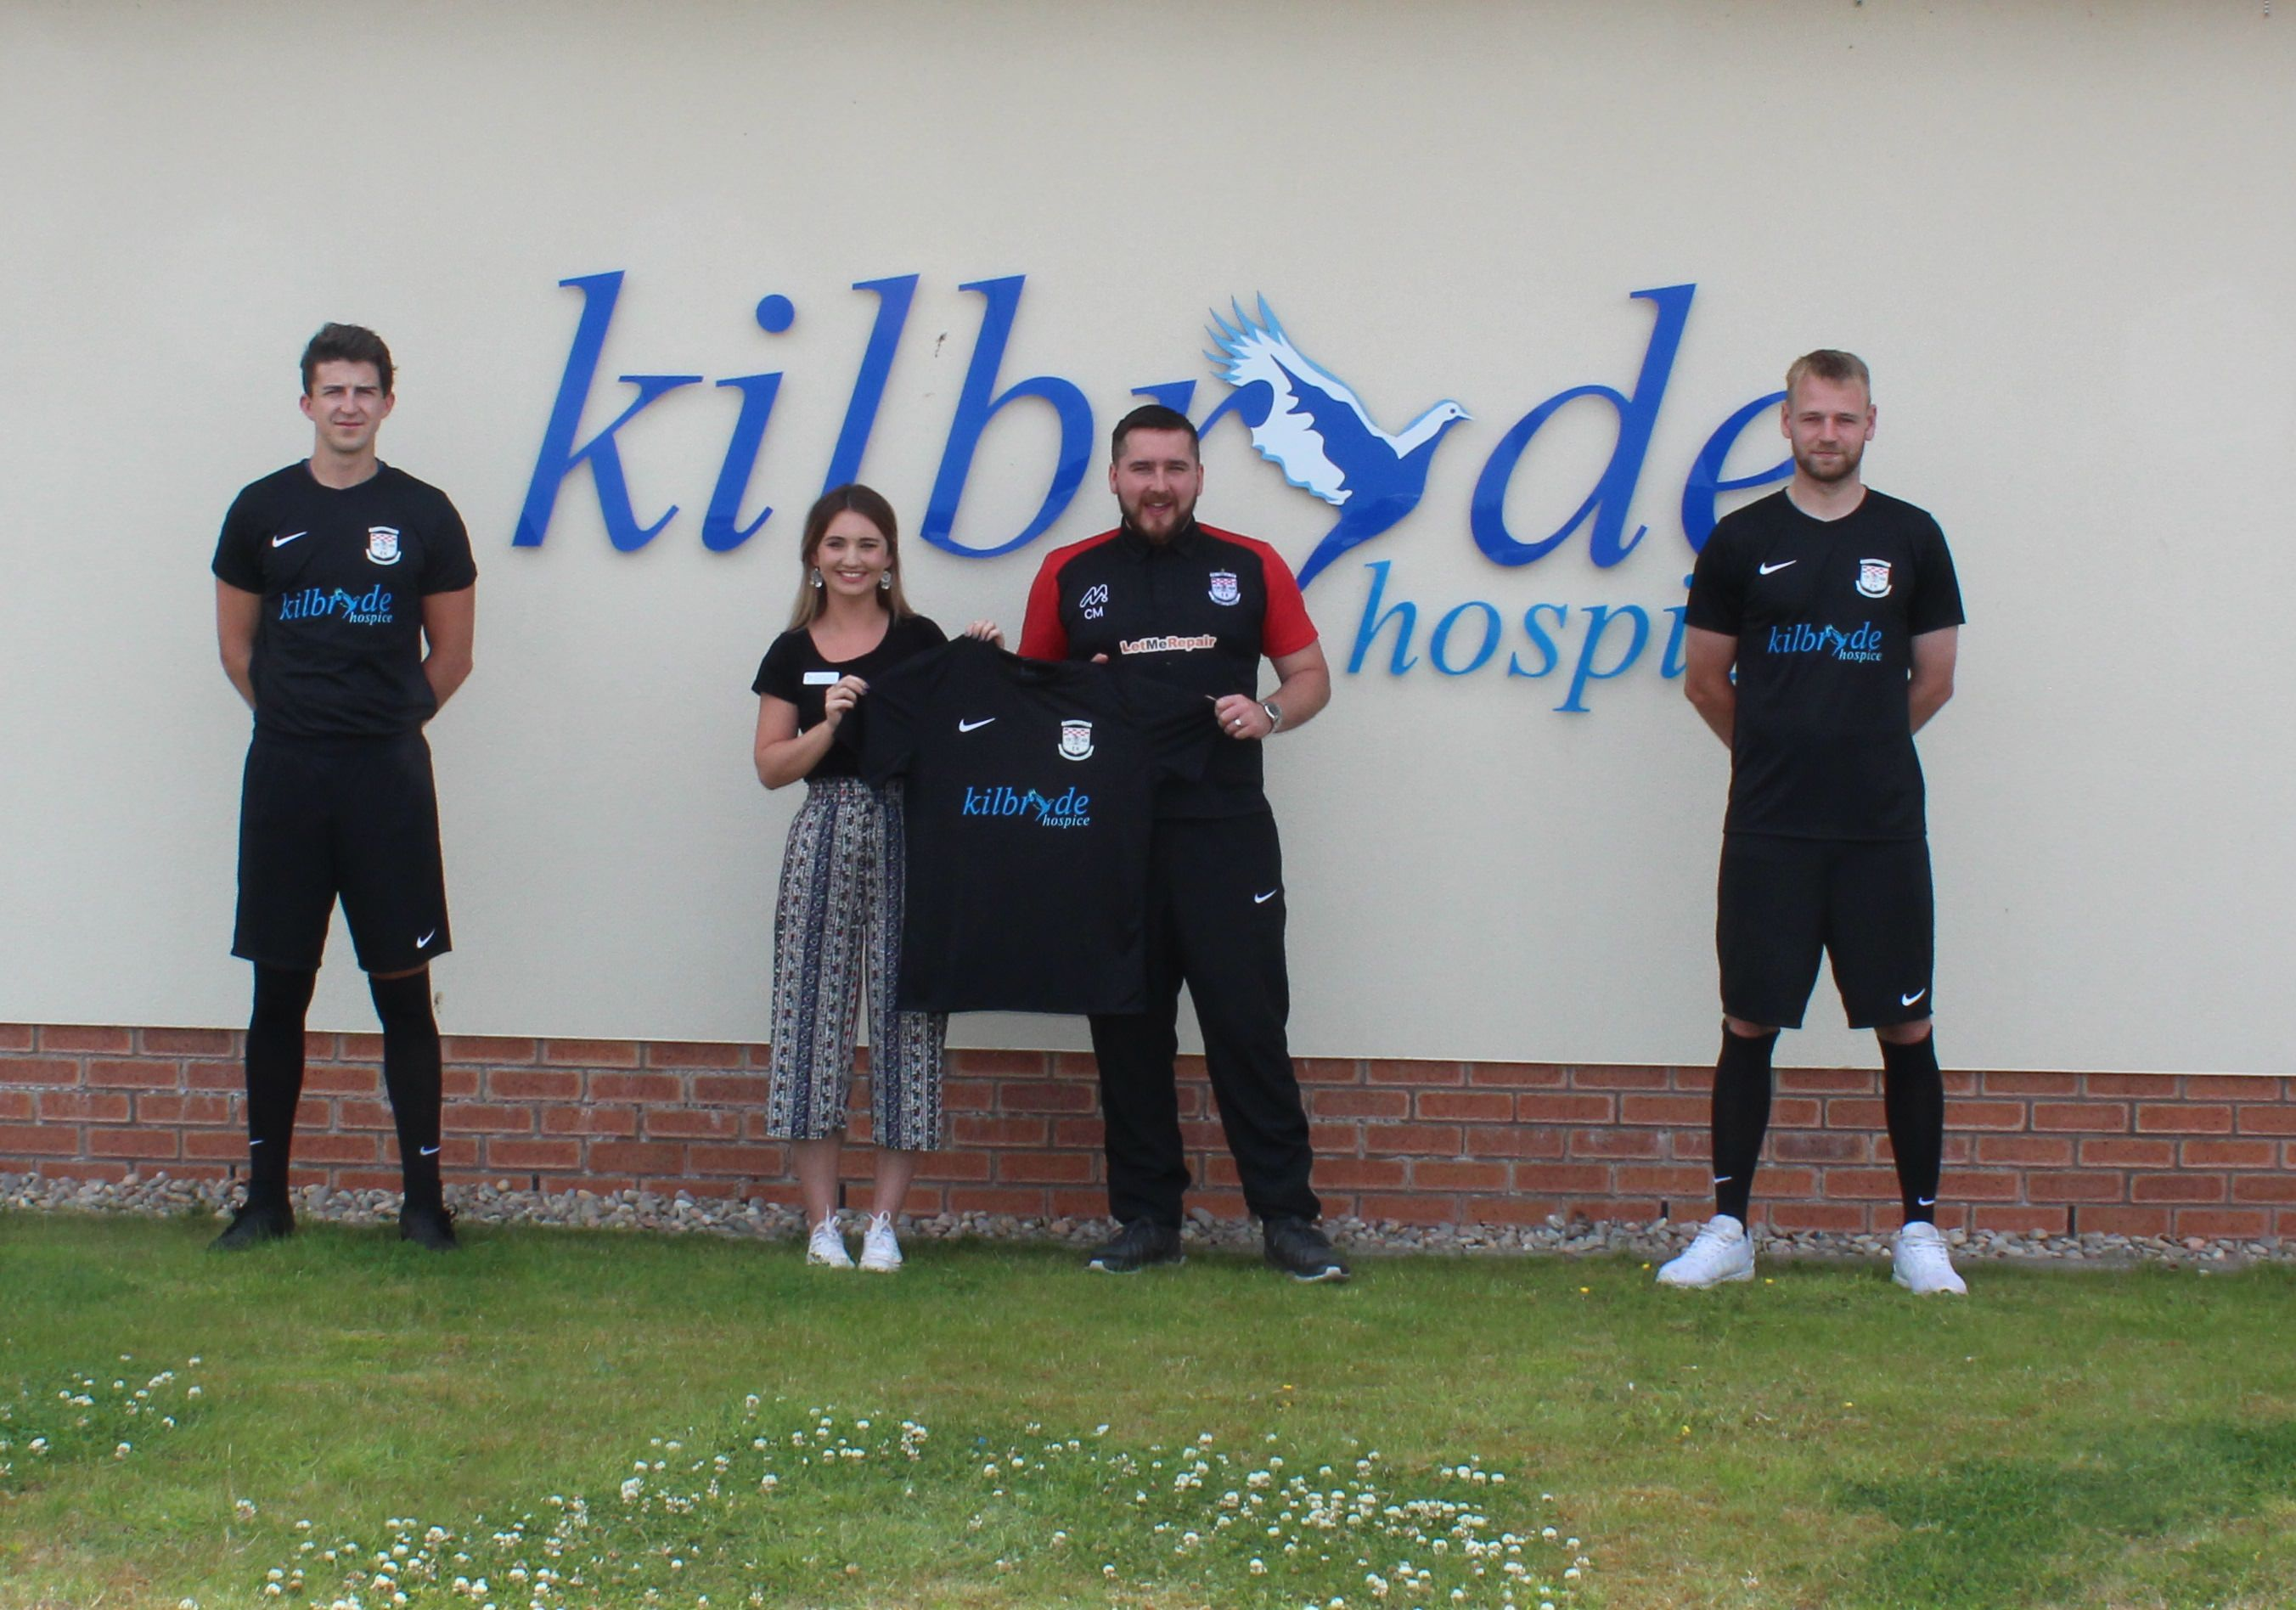 EK Thistle Amateurs reveal their new charity kit sponsor